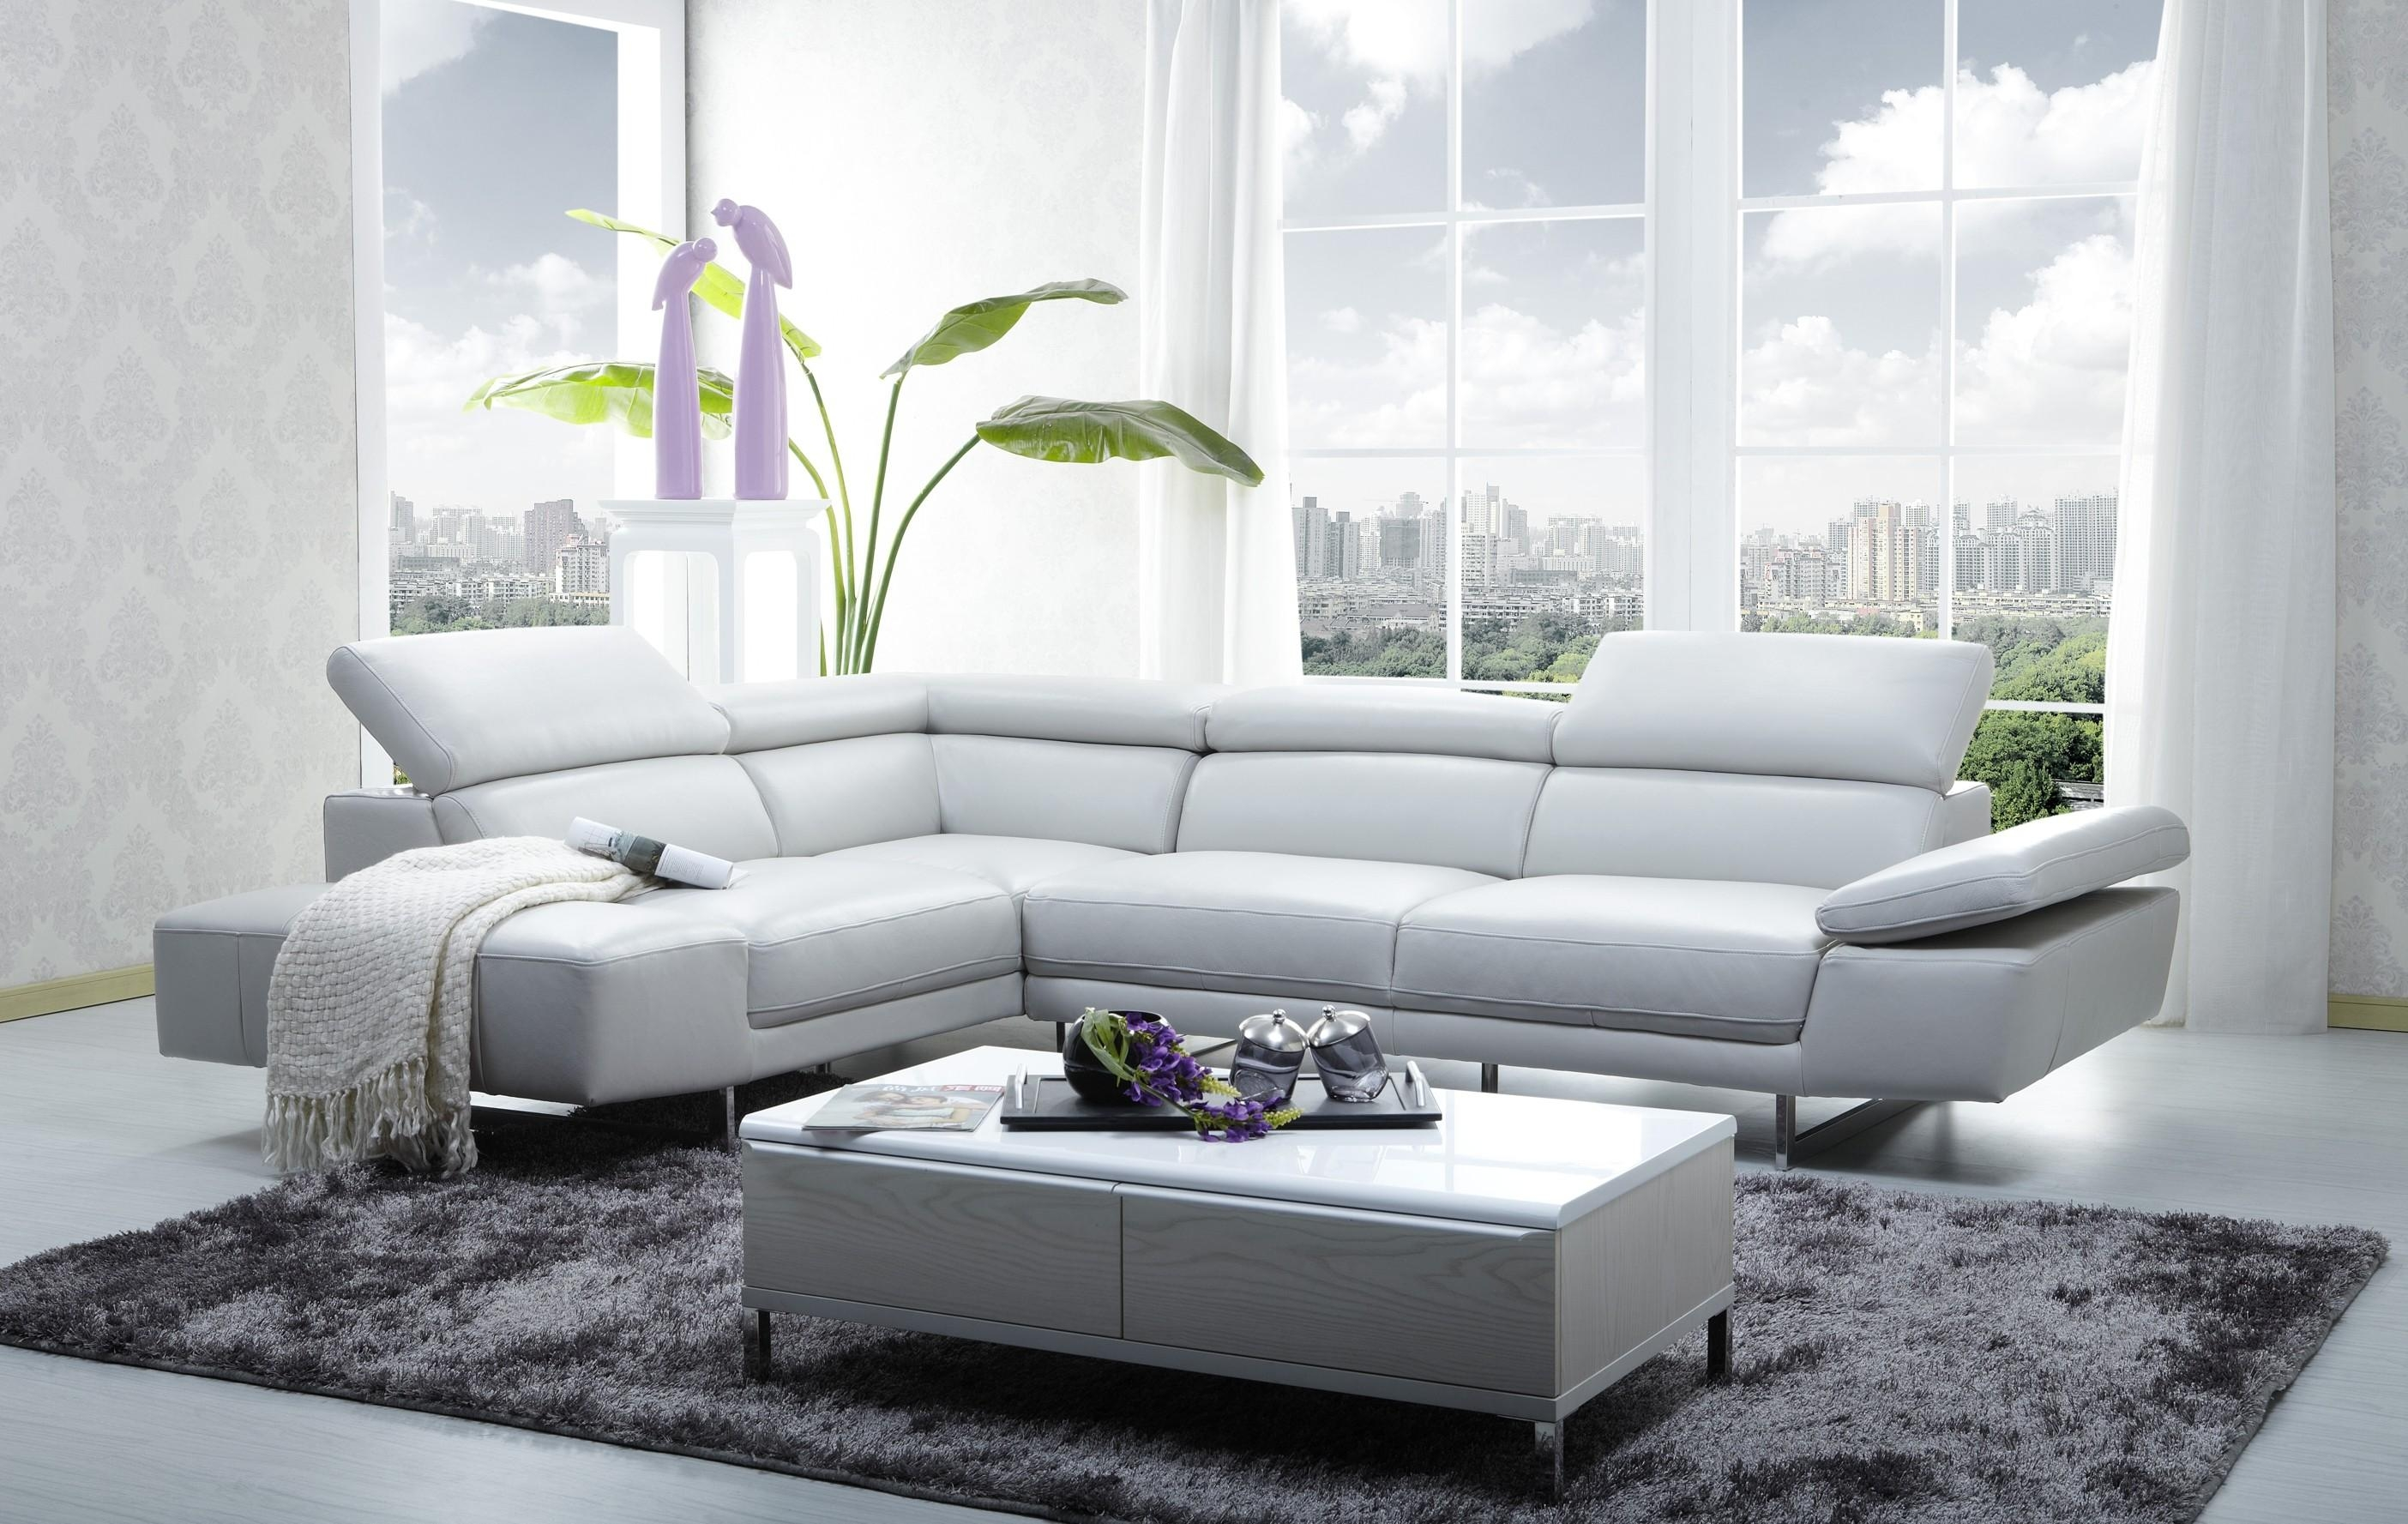 Contemporary White Italian Leather Sectional Sofa – S3Net For Italian Leather Sectionals Contemporary (Image 2 of 20)